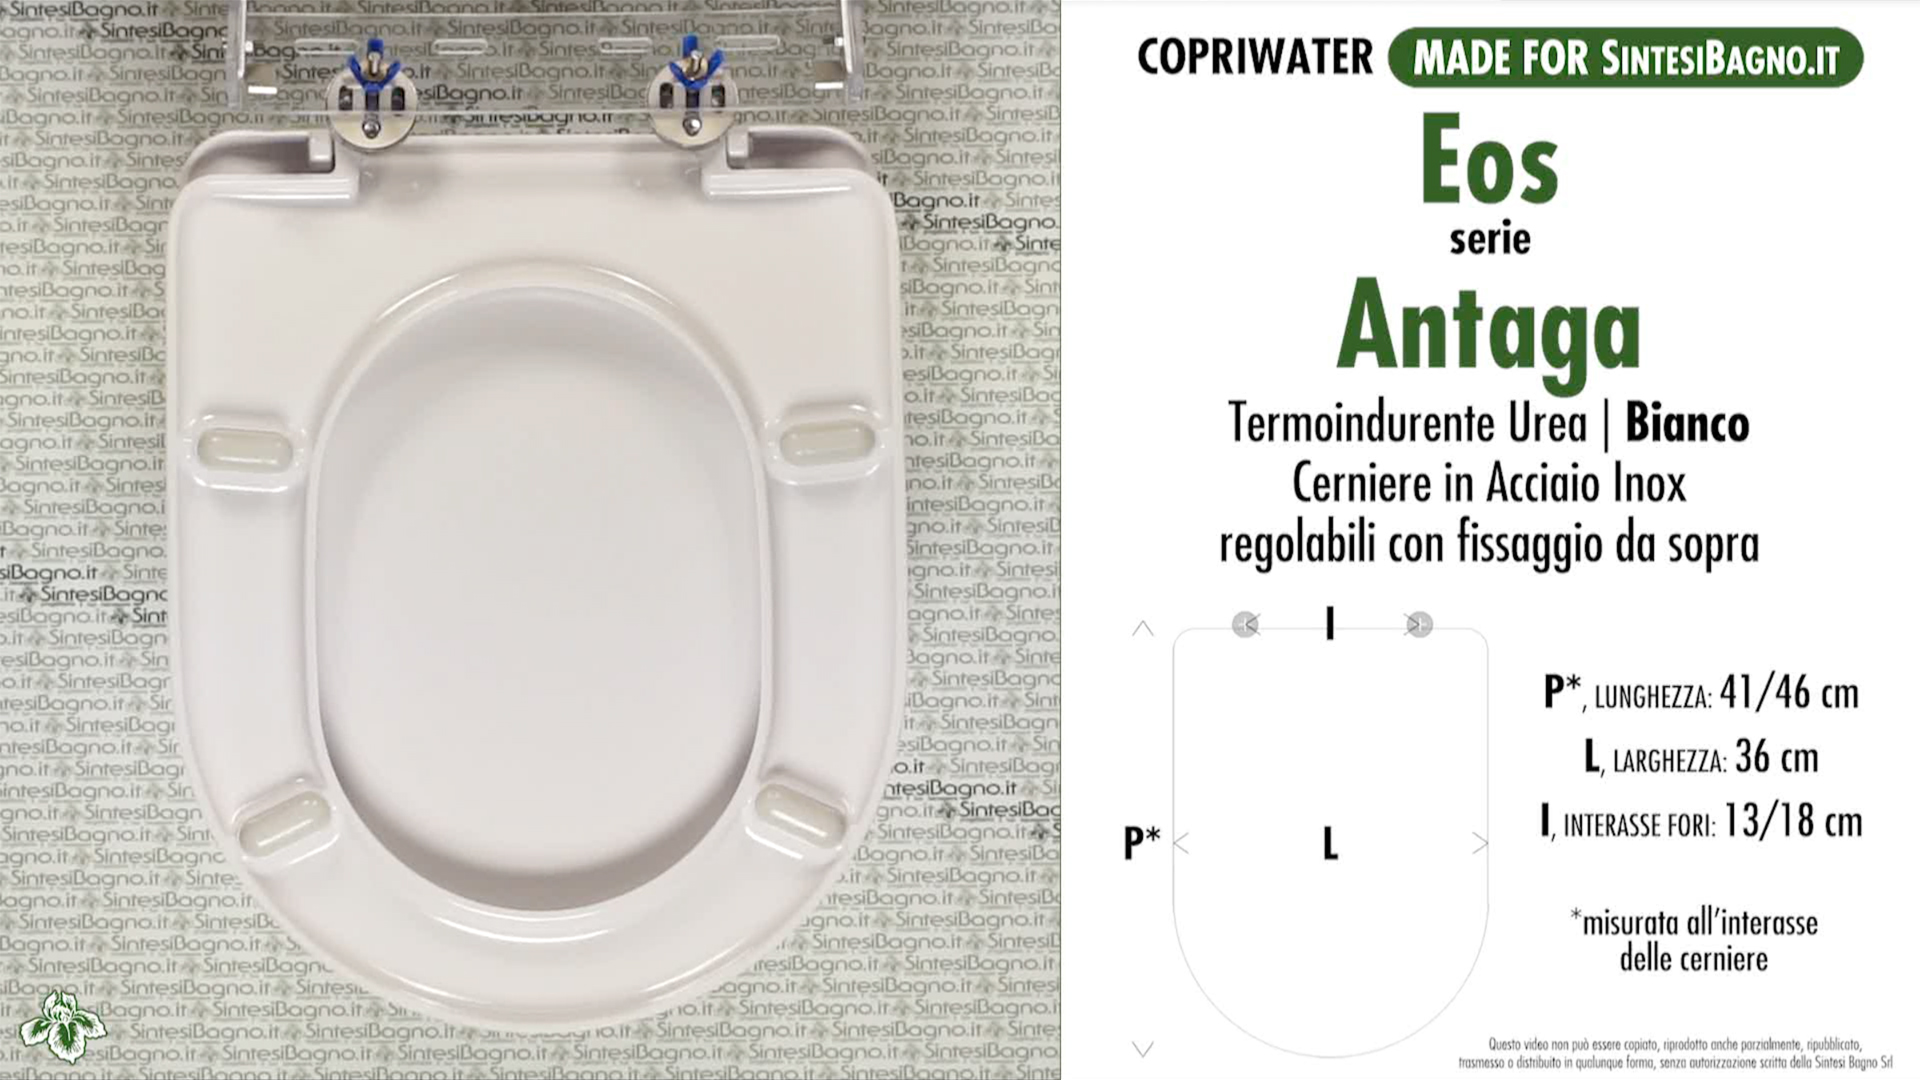 Ceramica Eos Catalogo.Wc Seat Made For Wc Antaga Eos Model Type Dedicated Cheap Sintesibagno Shop Online